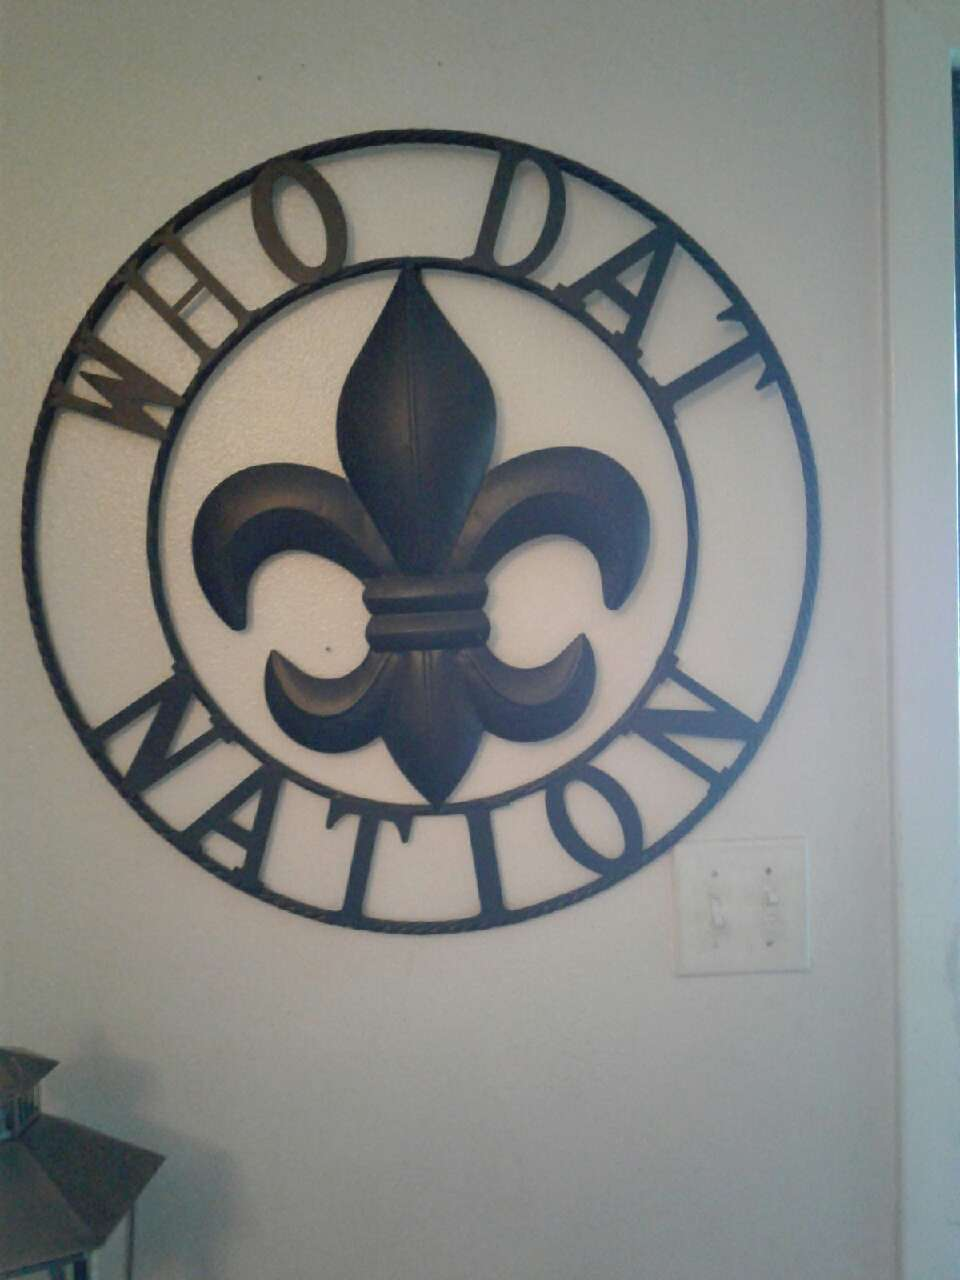 Letgo who dat nation steel black wall decor in algiers la for Decor nation